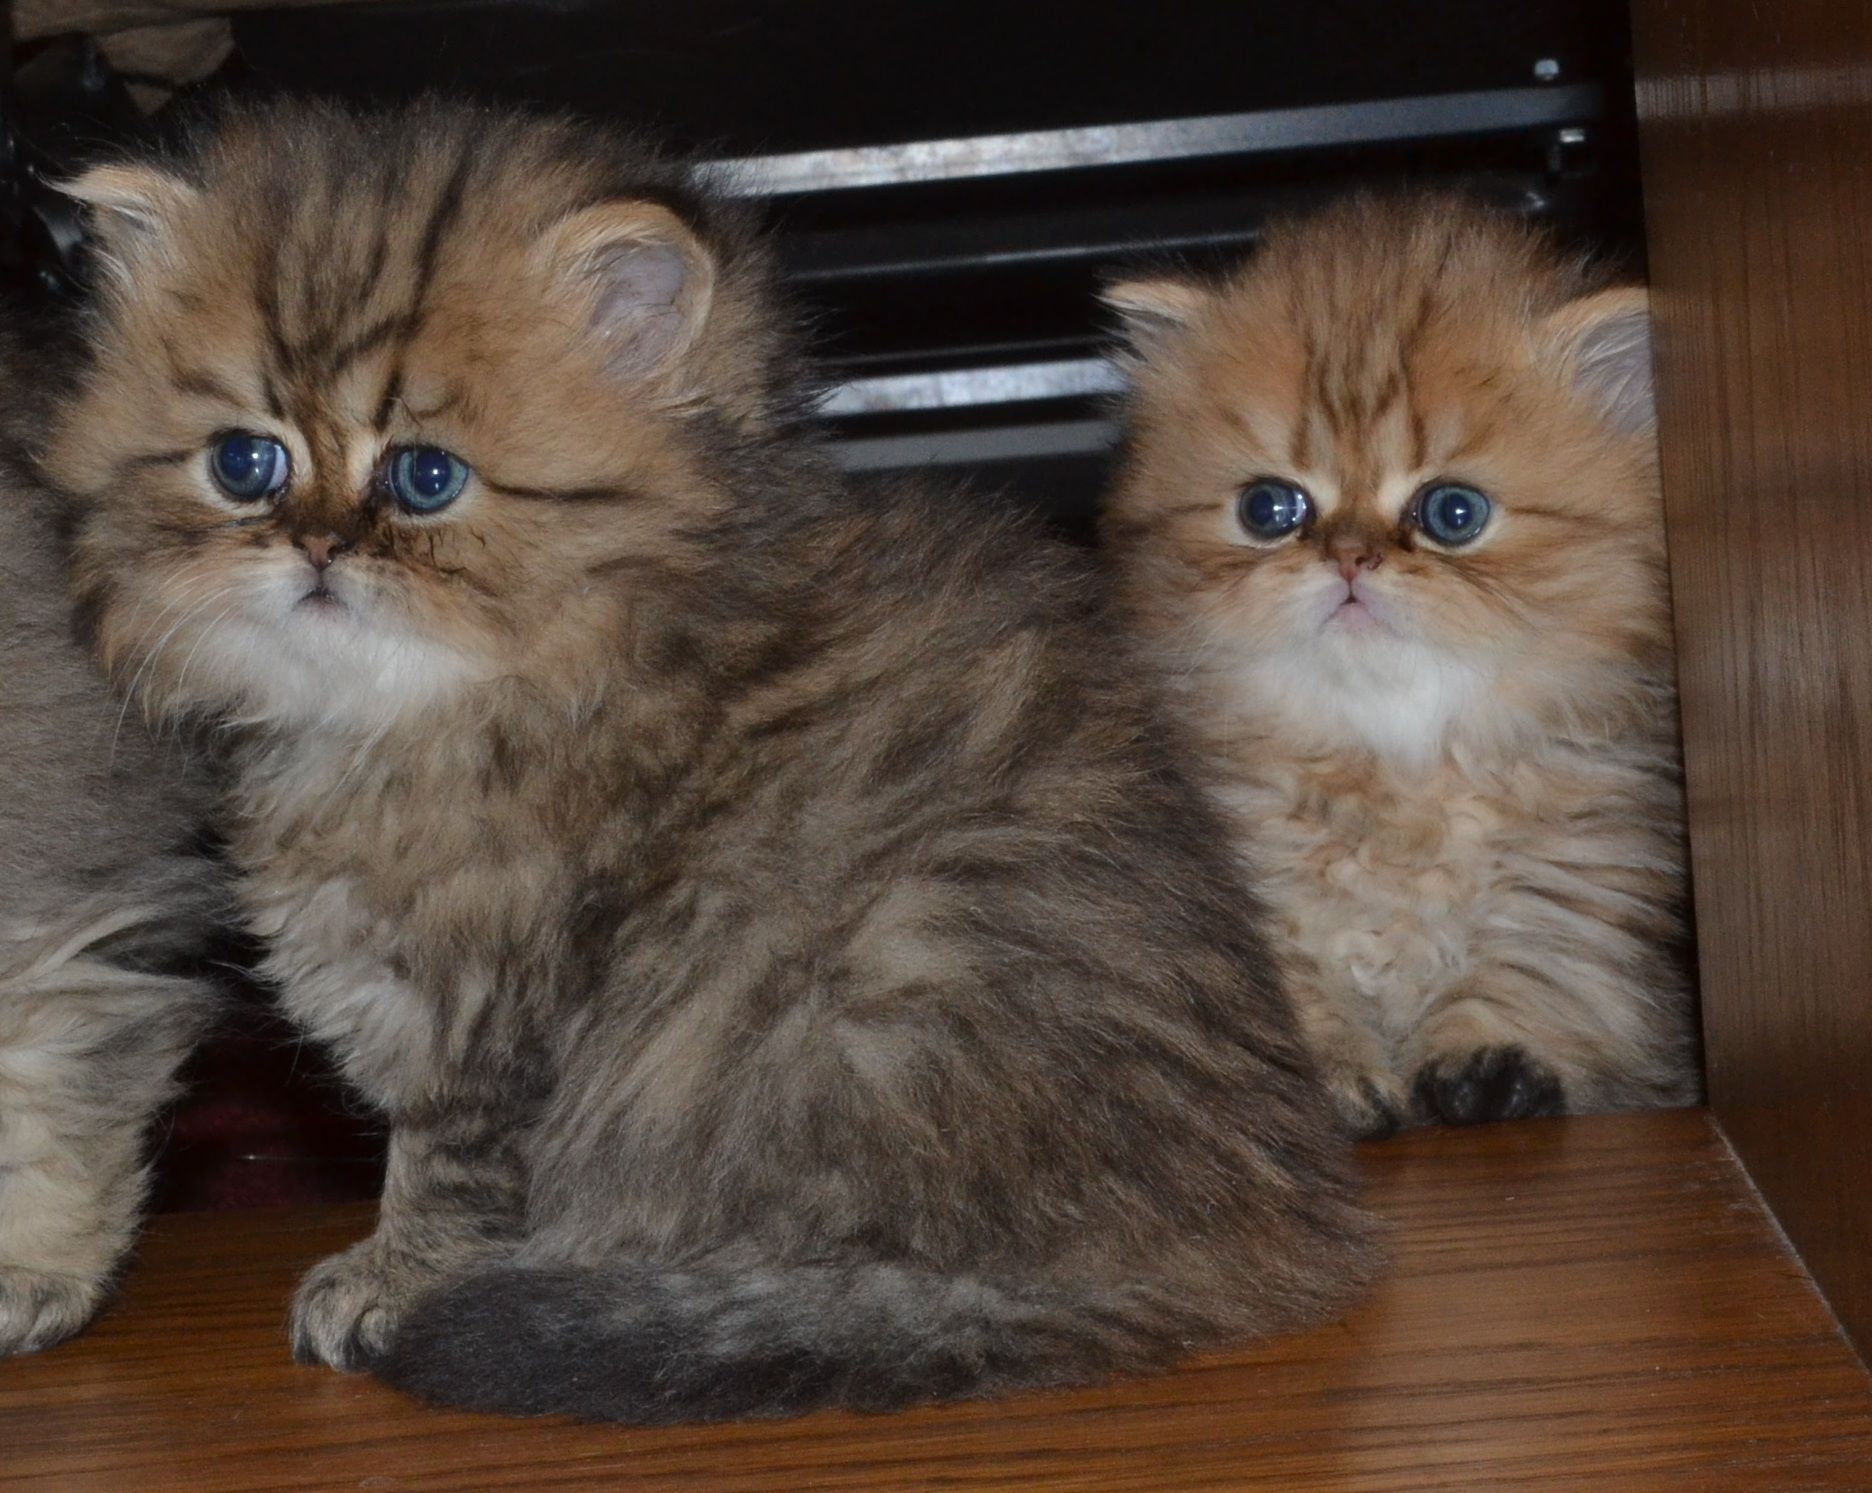 Persian Kittens And Like Omg Get Some Yourself Some Pawtastic Adorable Cat Shirts Cat Socks And Ot Persian Cat Doll Face Persian Kittens Teacup Persian Cats